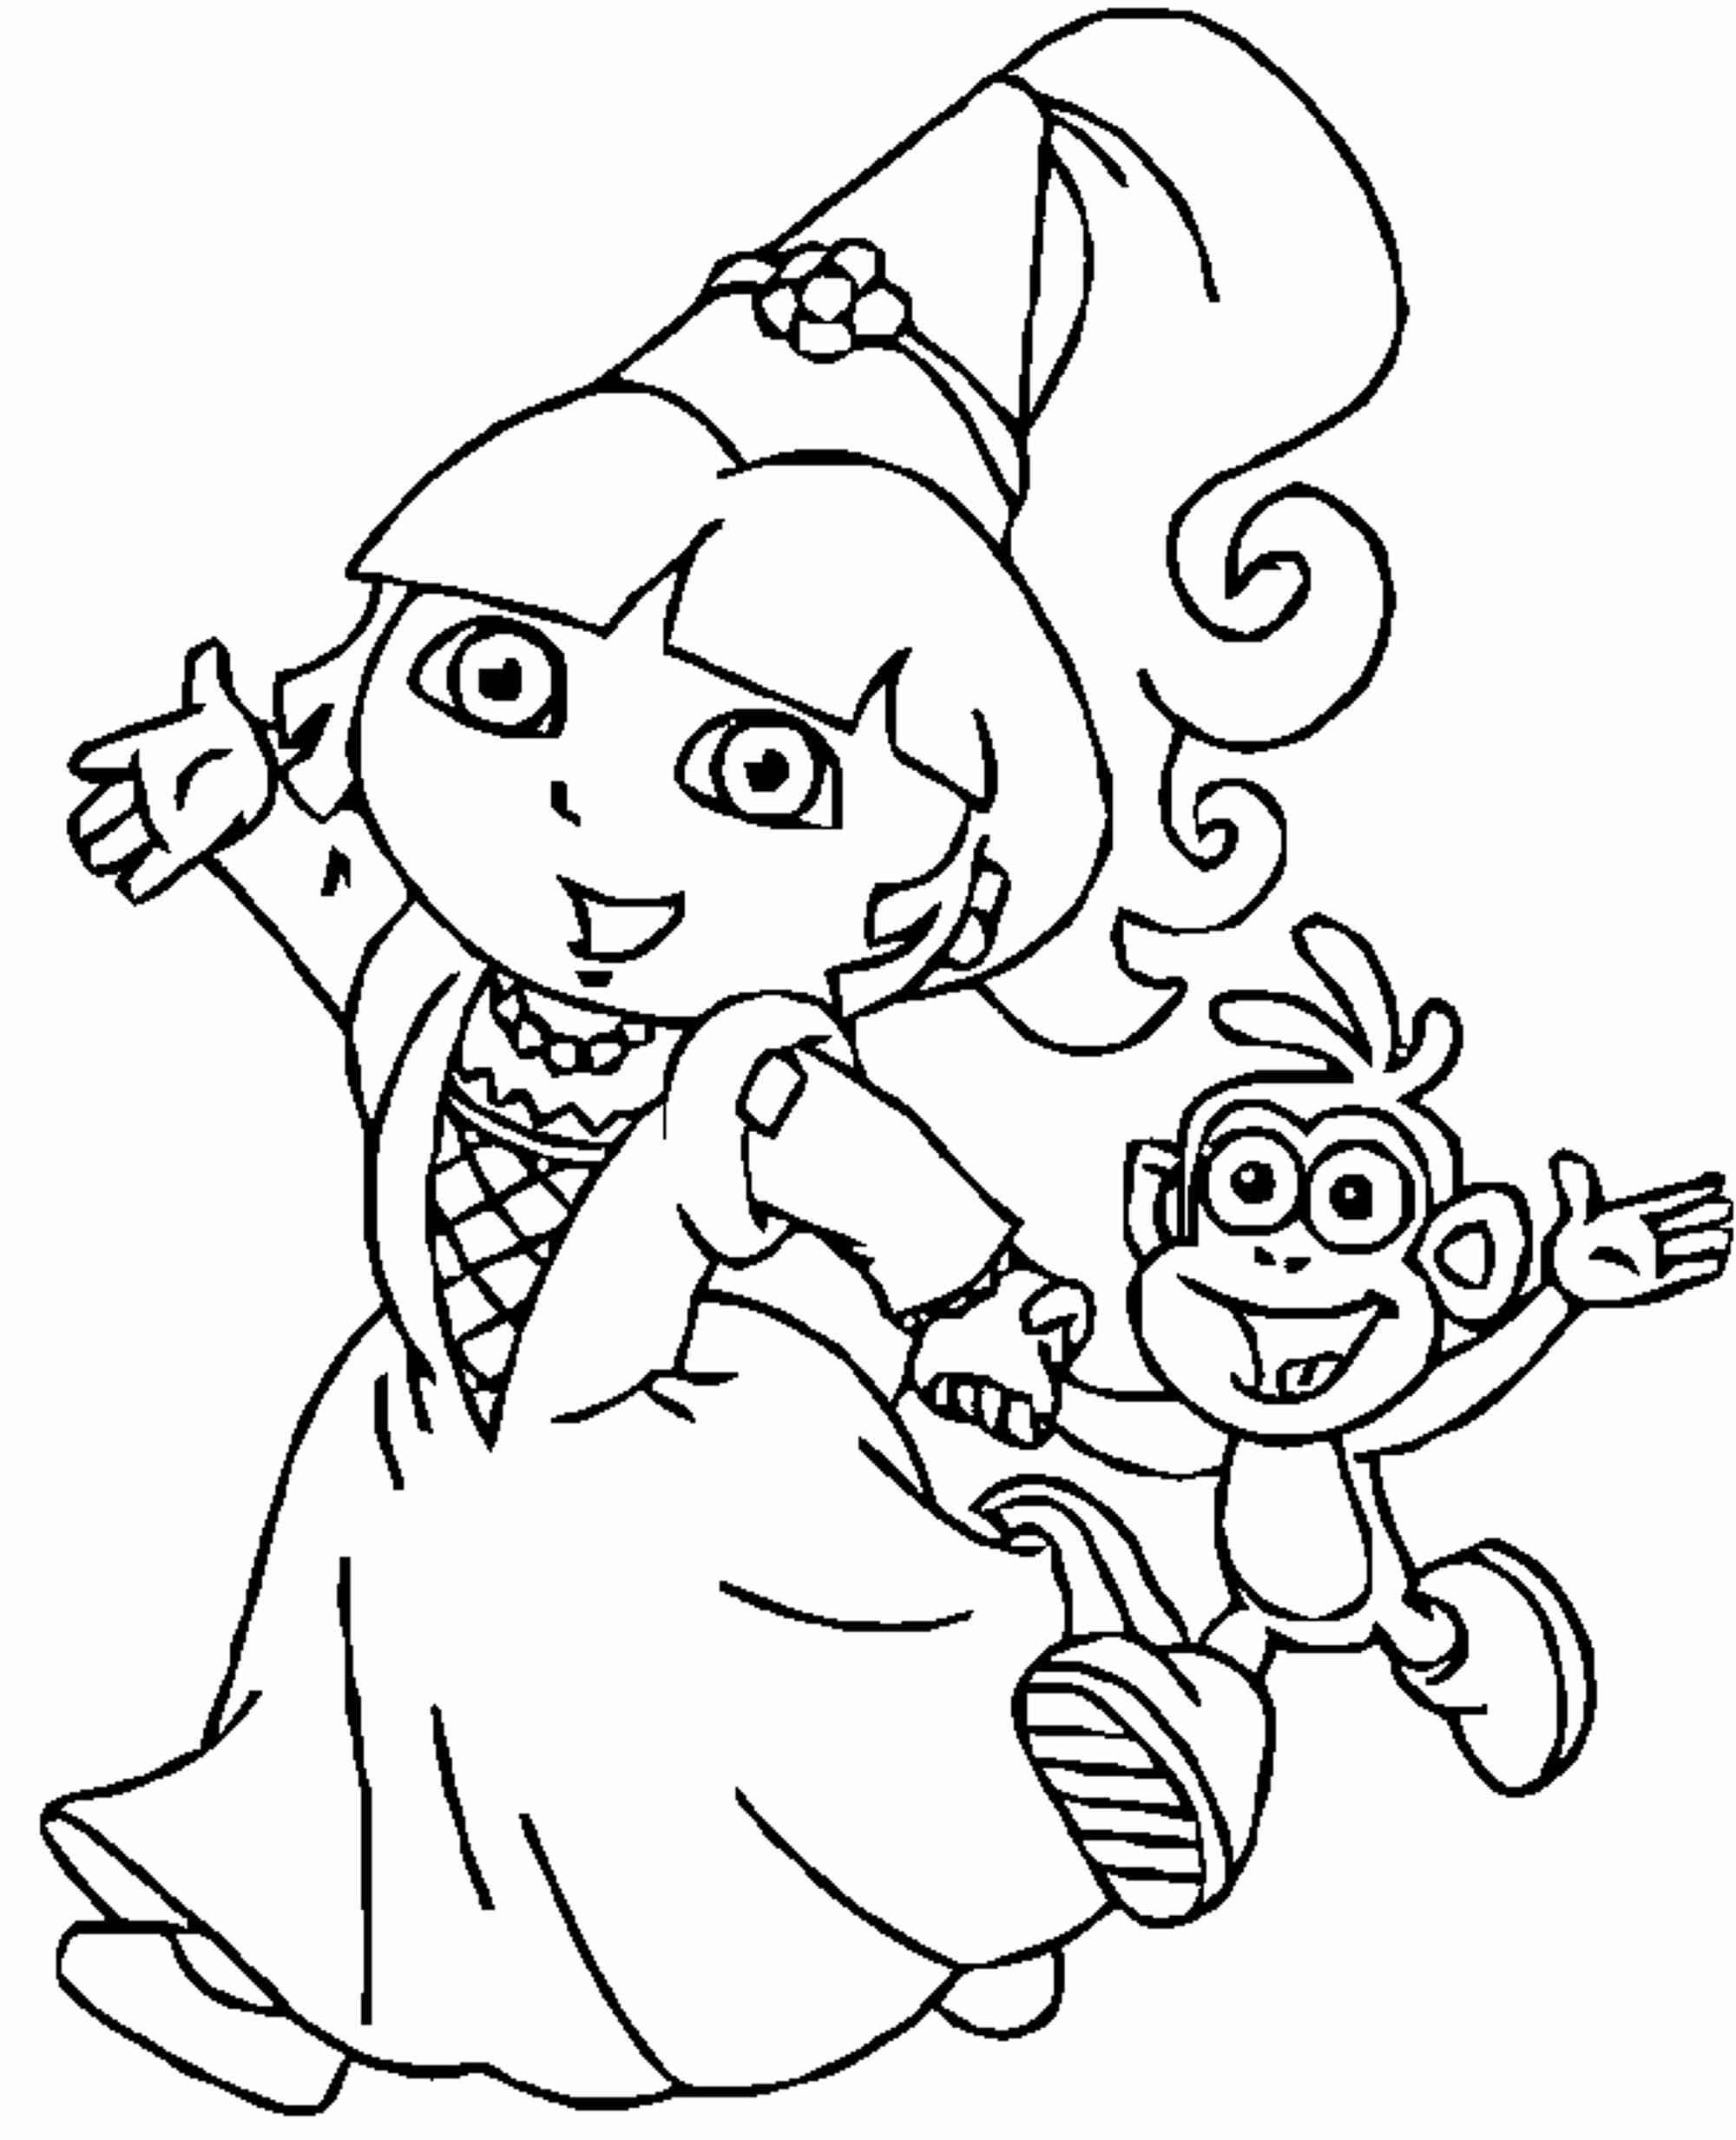 dora colouring pages printable dora colouring pictures coloring pages to print printable colouring pages dora